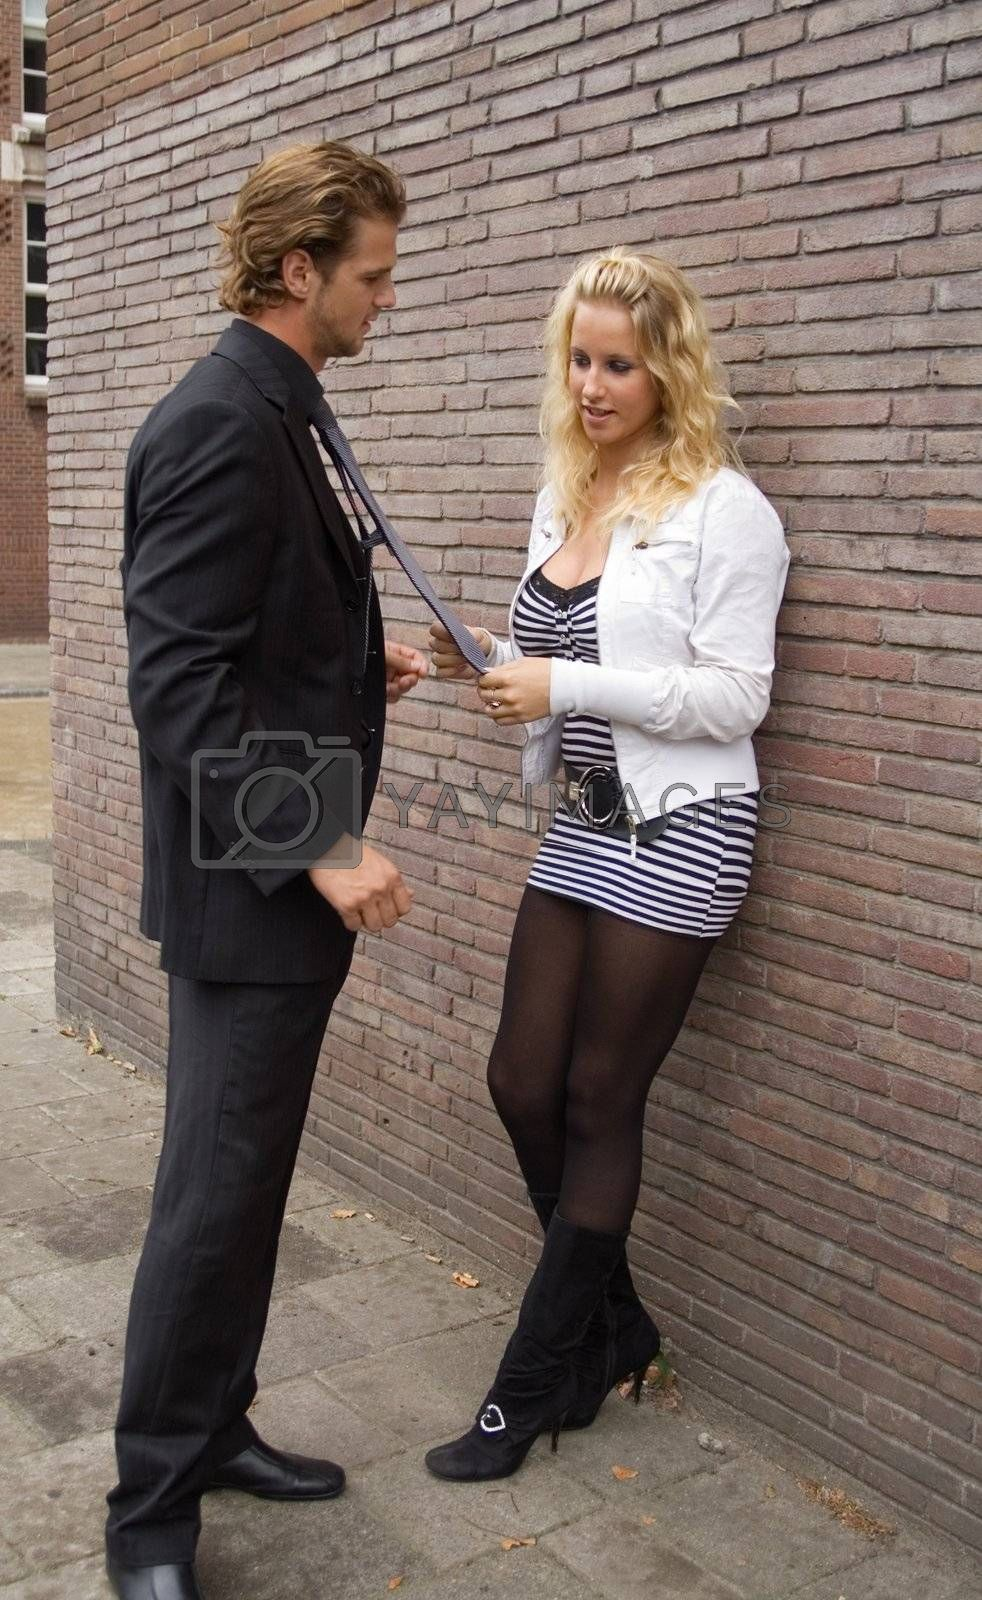 couple standing next to a brick wall